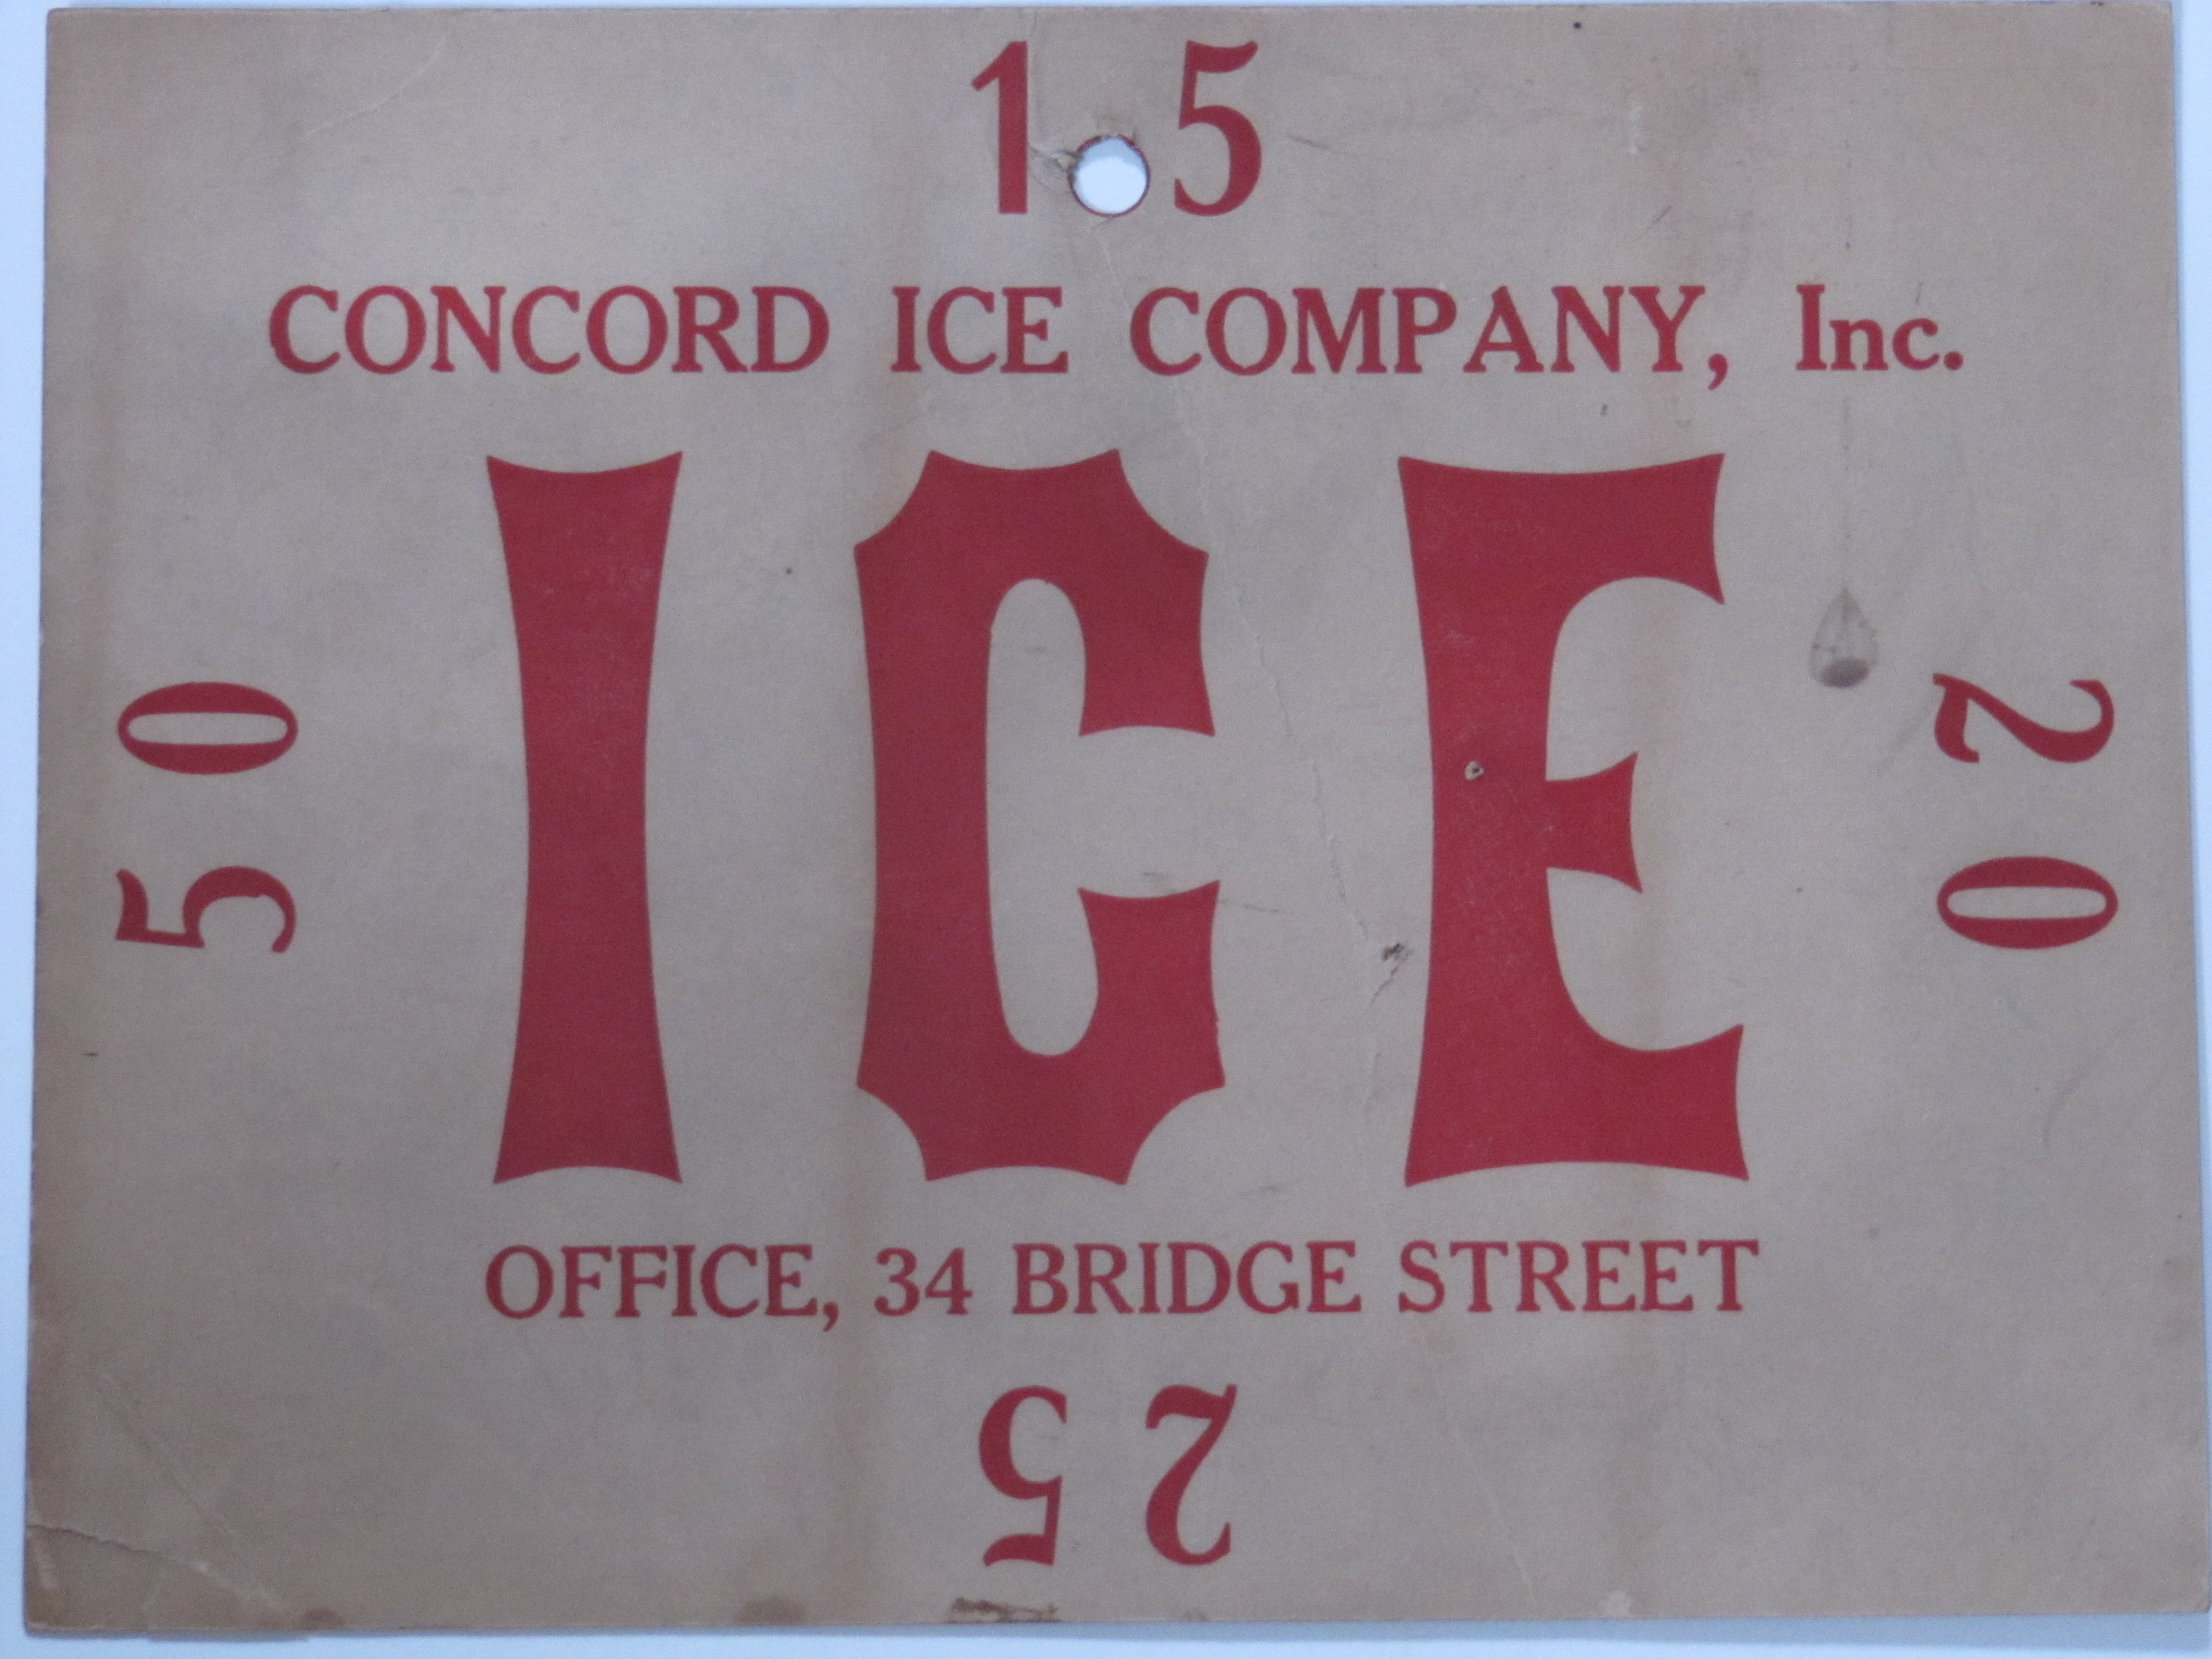 Concord Ice Co.